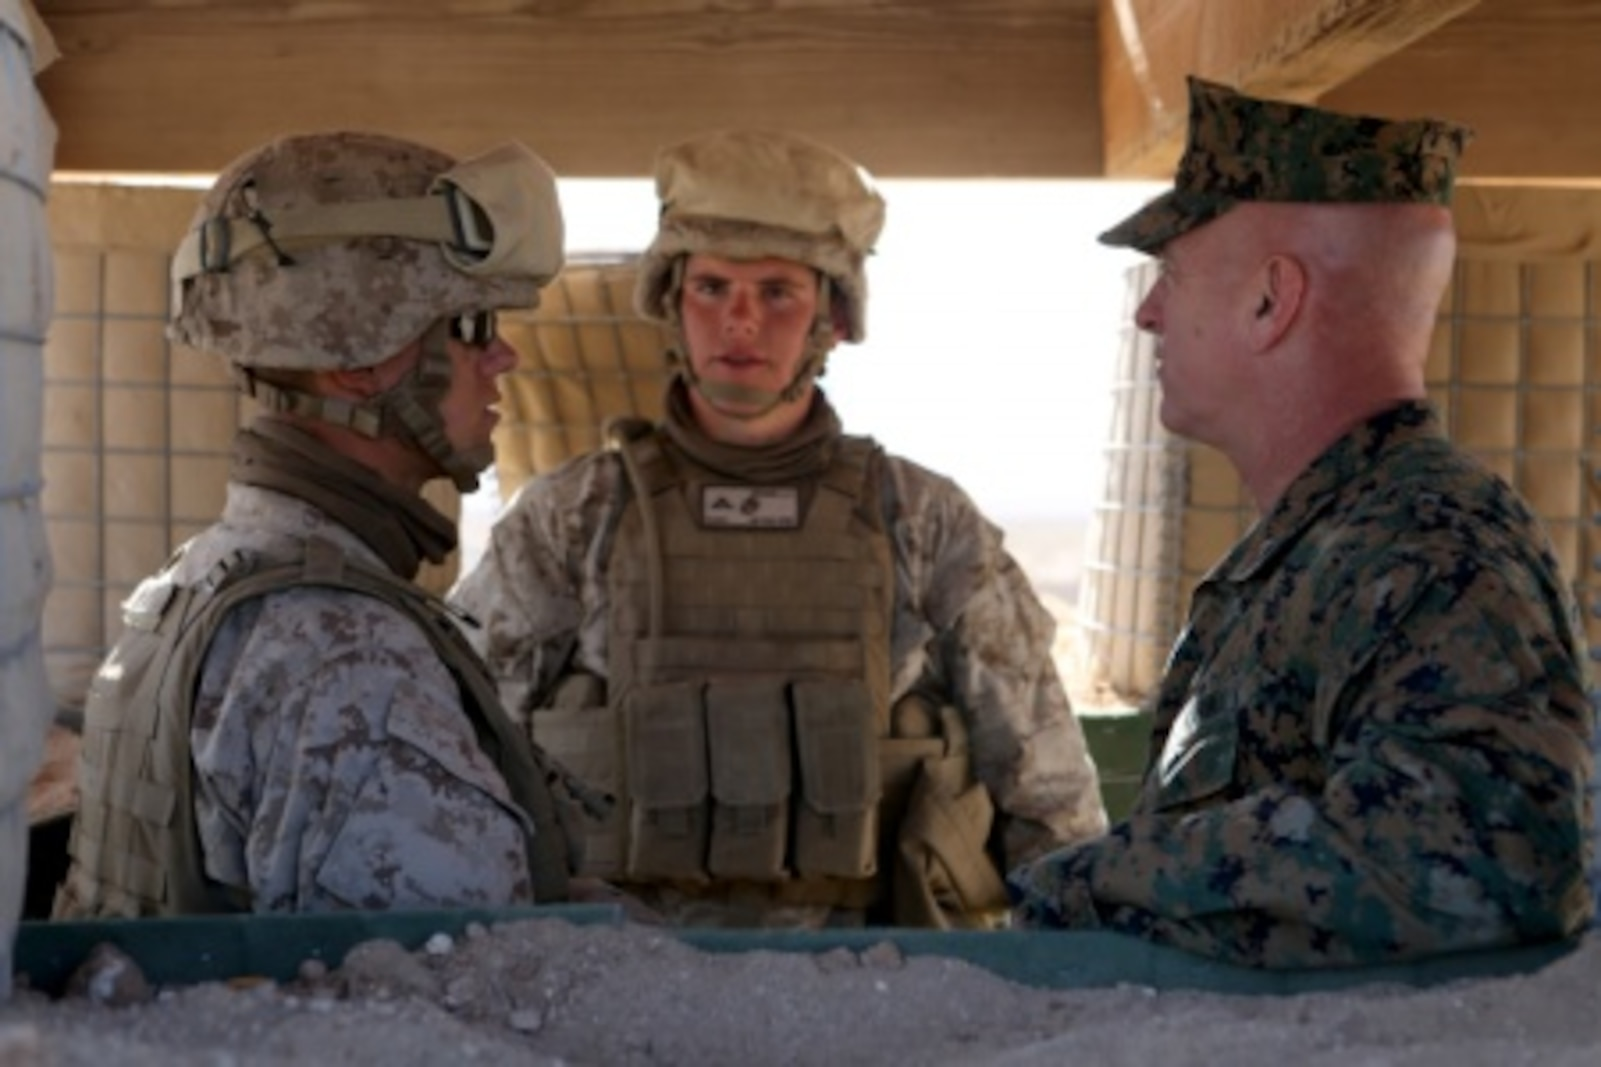 Brigadier General David A. Ottignon, 1st Marine Logistics Group Commanding General, speaks with Lance Cpl. Frederick Vaca and Lance Cpl. Landon Brown, combat engineers with Combat Logistics Battalion 5, about how they can positively affect their unit by training hard and excelling in their job. Ottignon visited several MLG units aboard Marine Corps Air Ground Combat Center Twentynine Palms, Calif., on Jan. 26-27, 2016, to speak with unit commanders as well as engage junior Marines and Non-Commissioned officers to get sense of how the units were doing and what areas could be improved upon.